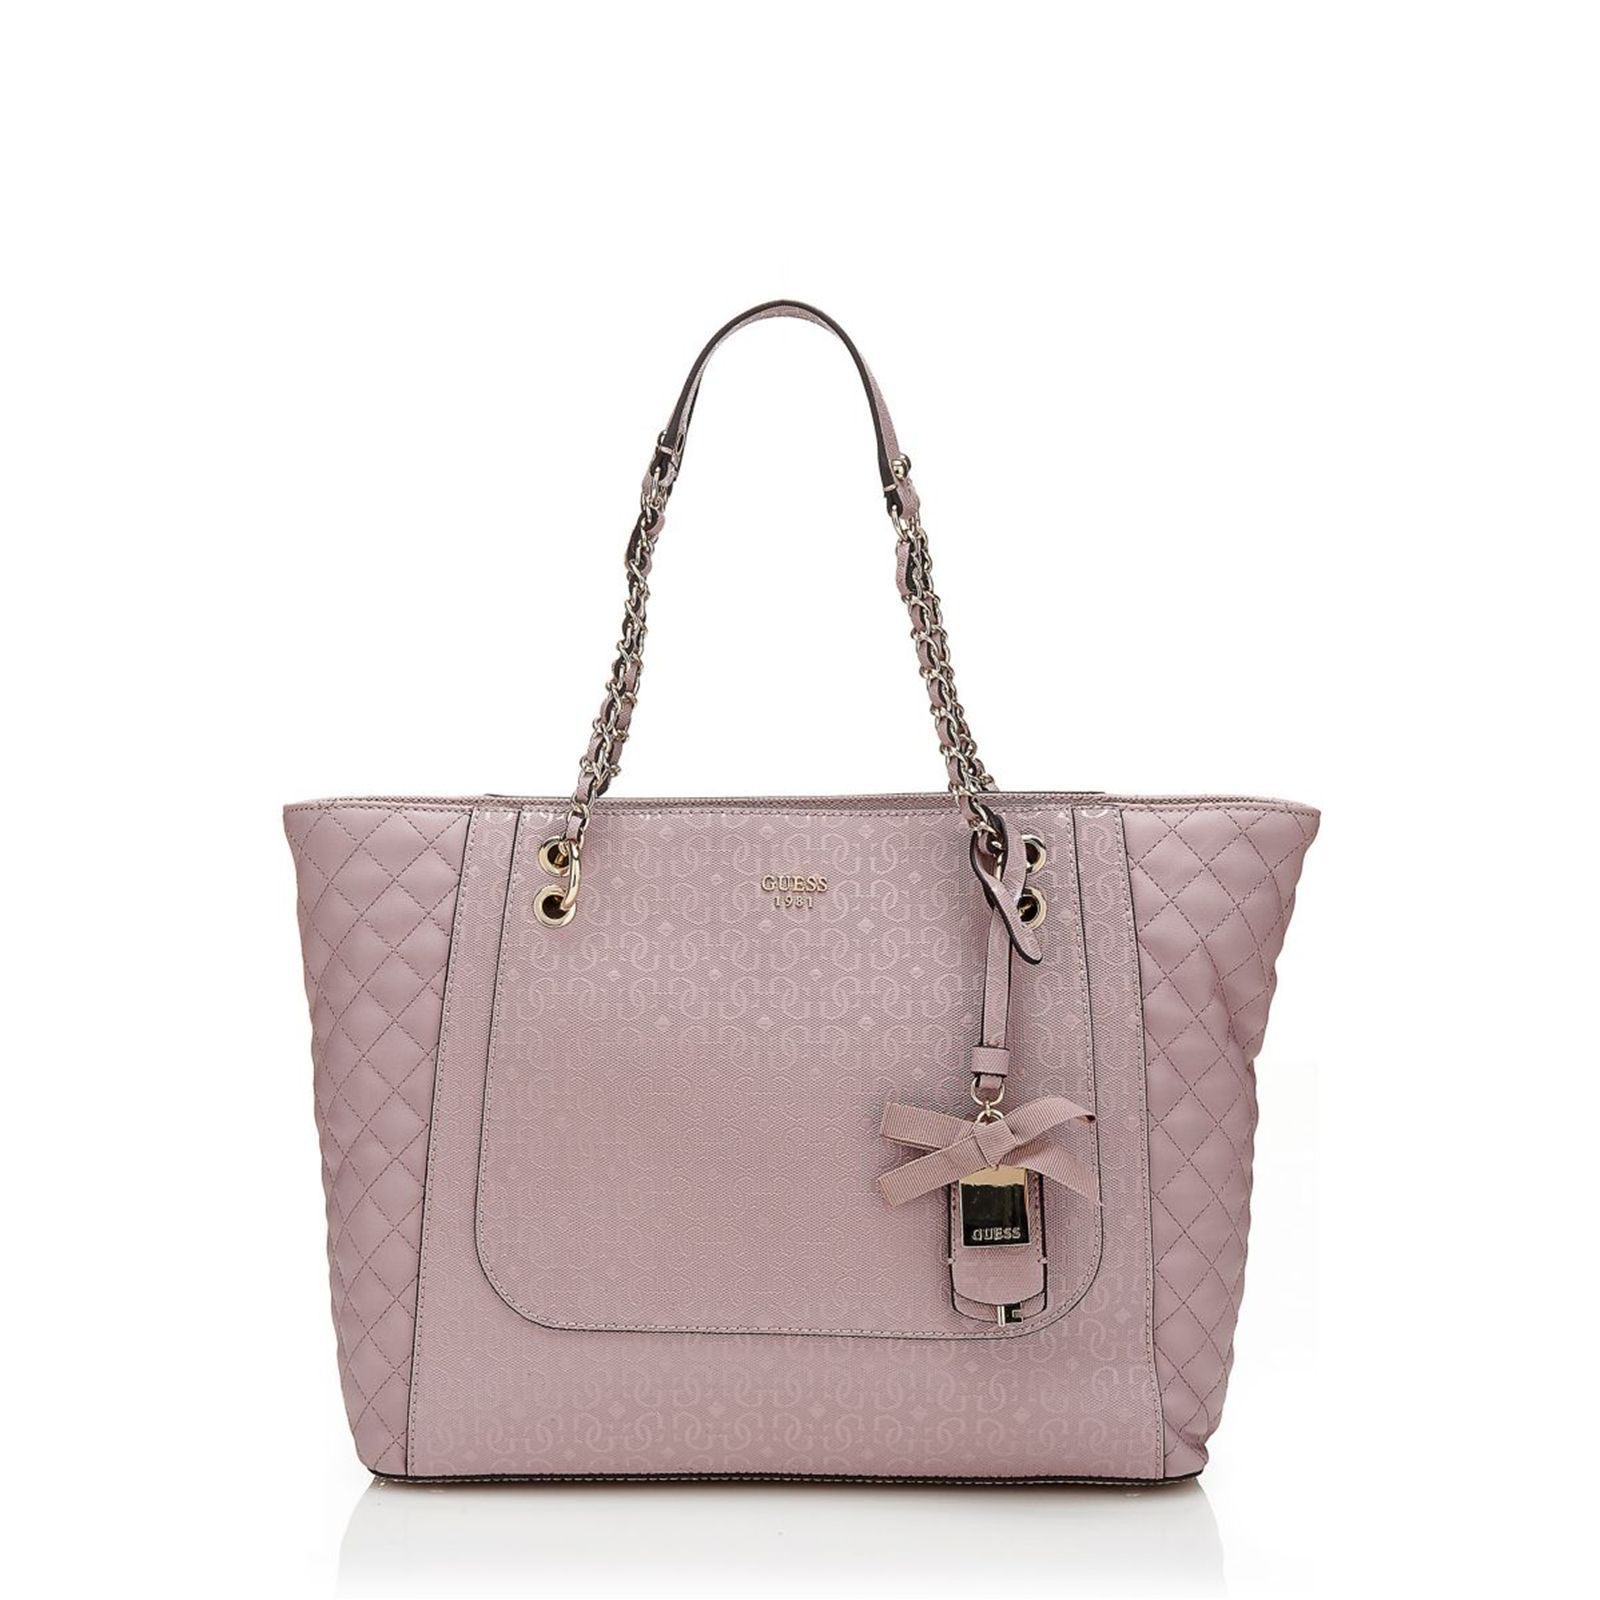 Cabas Marian Guess Rose Brandalley Sac REdPxBw